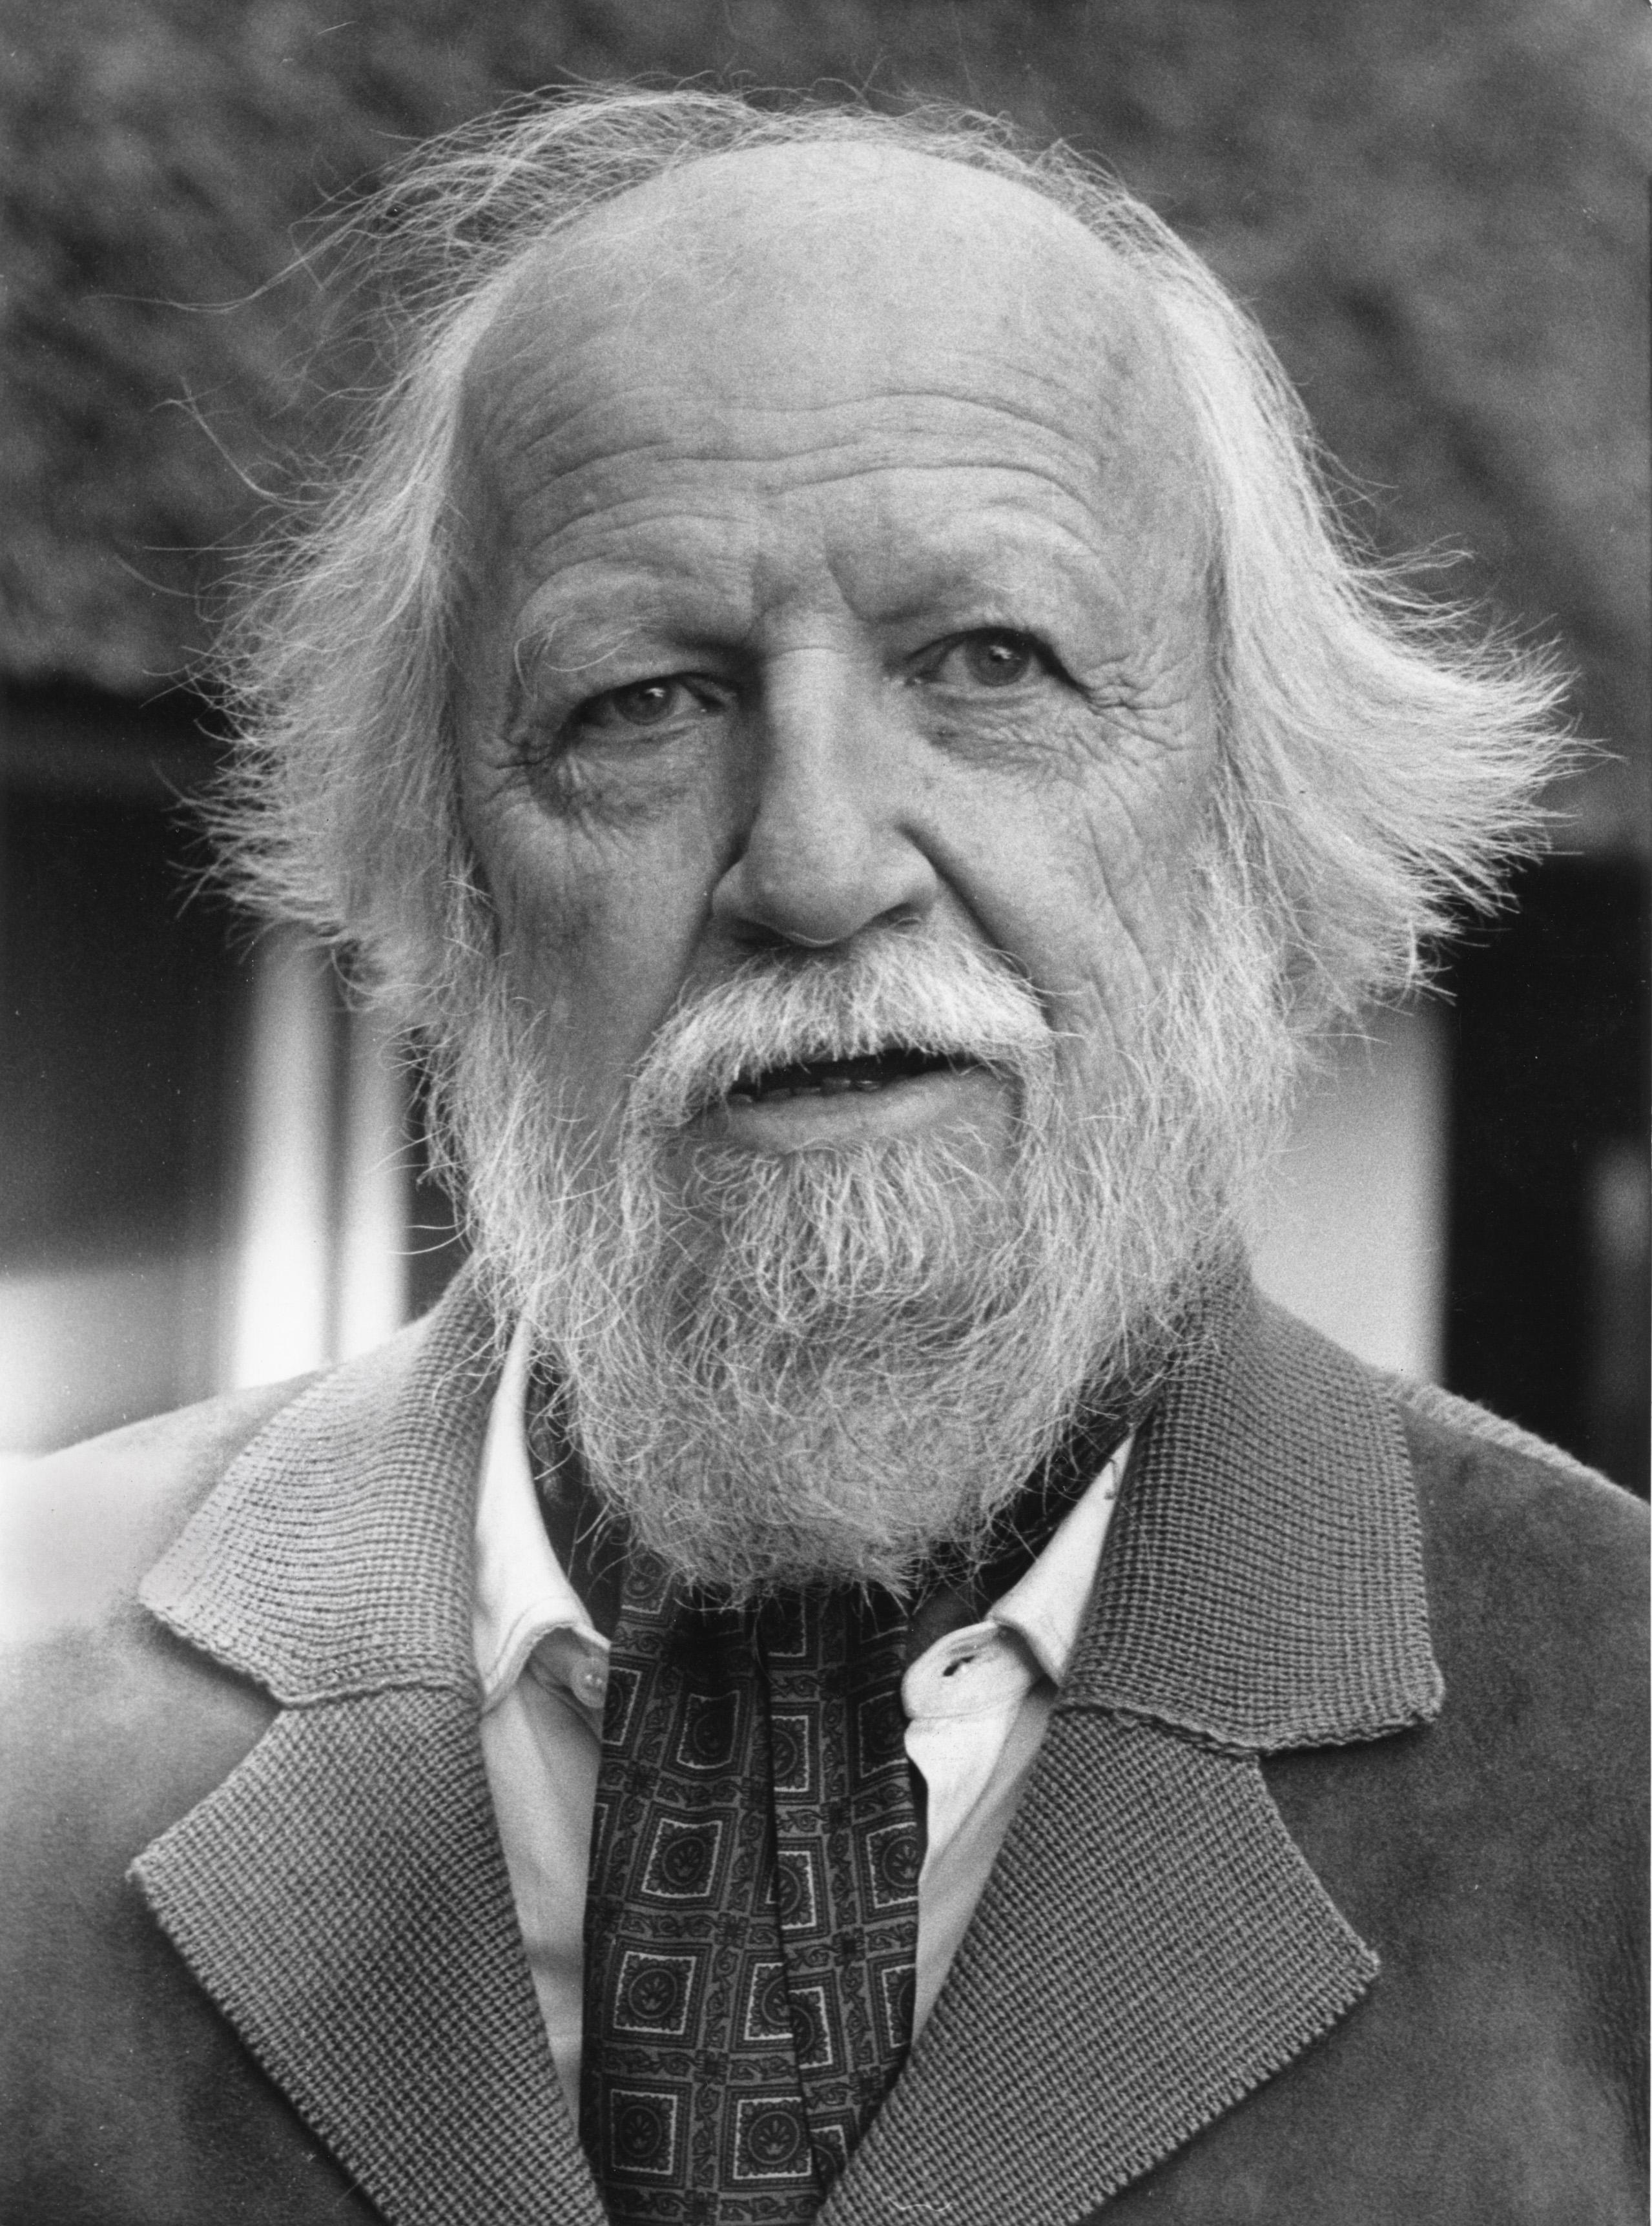 William Golding, author of Lord of the Flies 'tried to rape girl a 15-year-old girl'